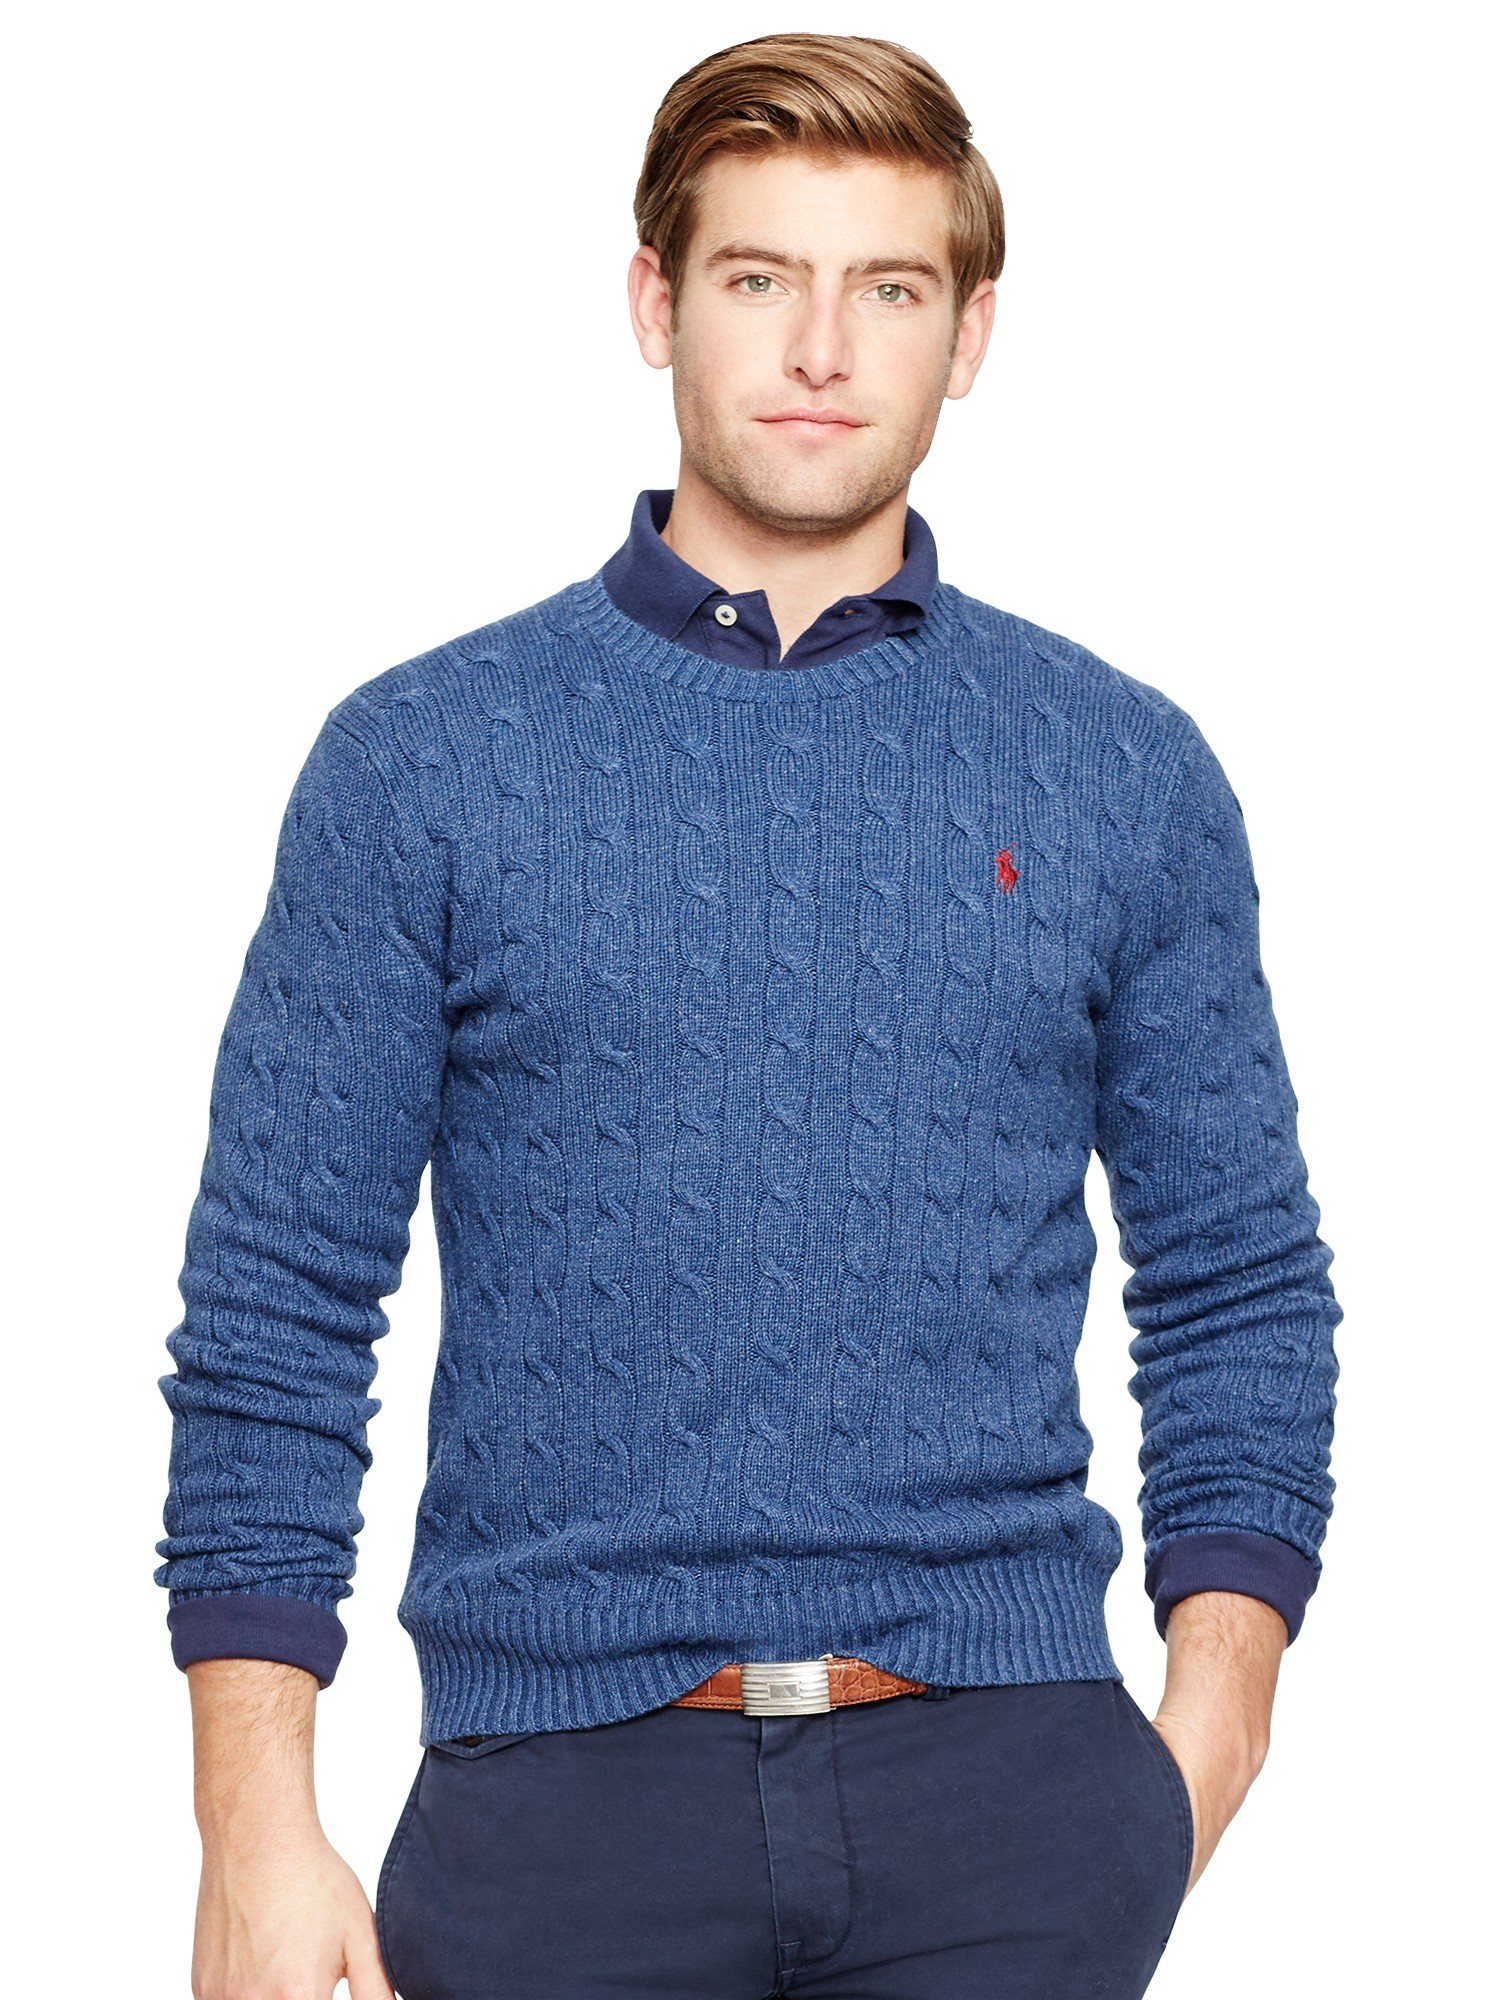 d3ebdc00688 Polo ralph lauren Tussah Silk Cable Knit Jumper in Blue for Men Lyst